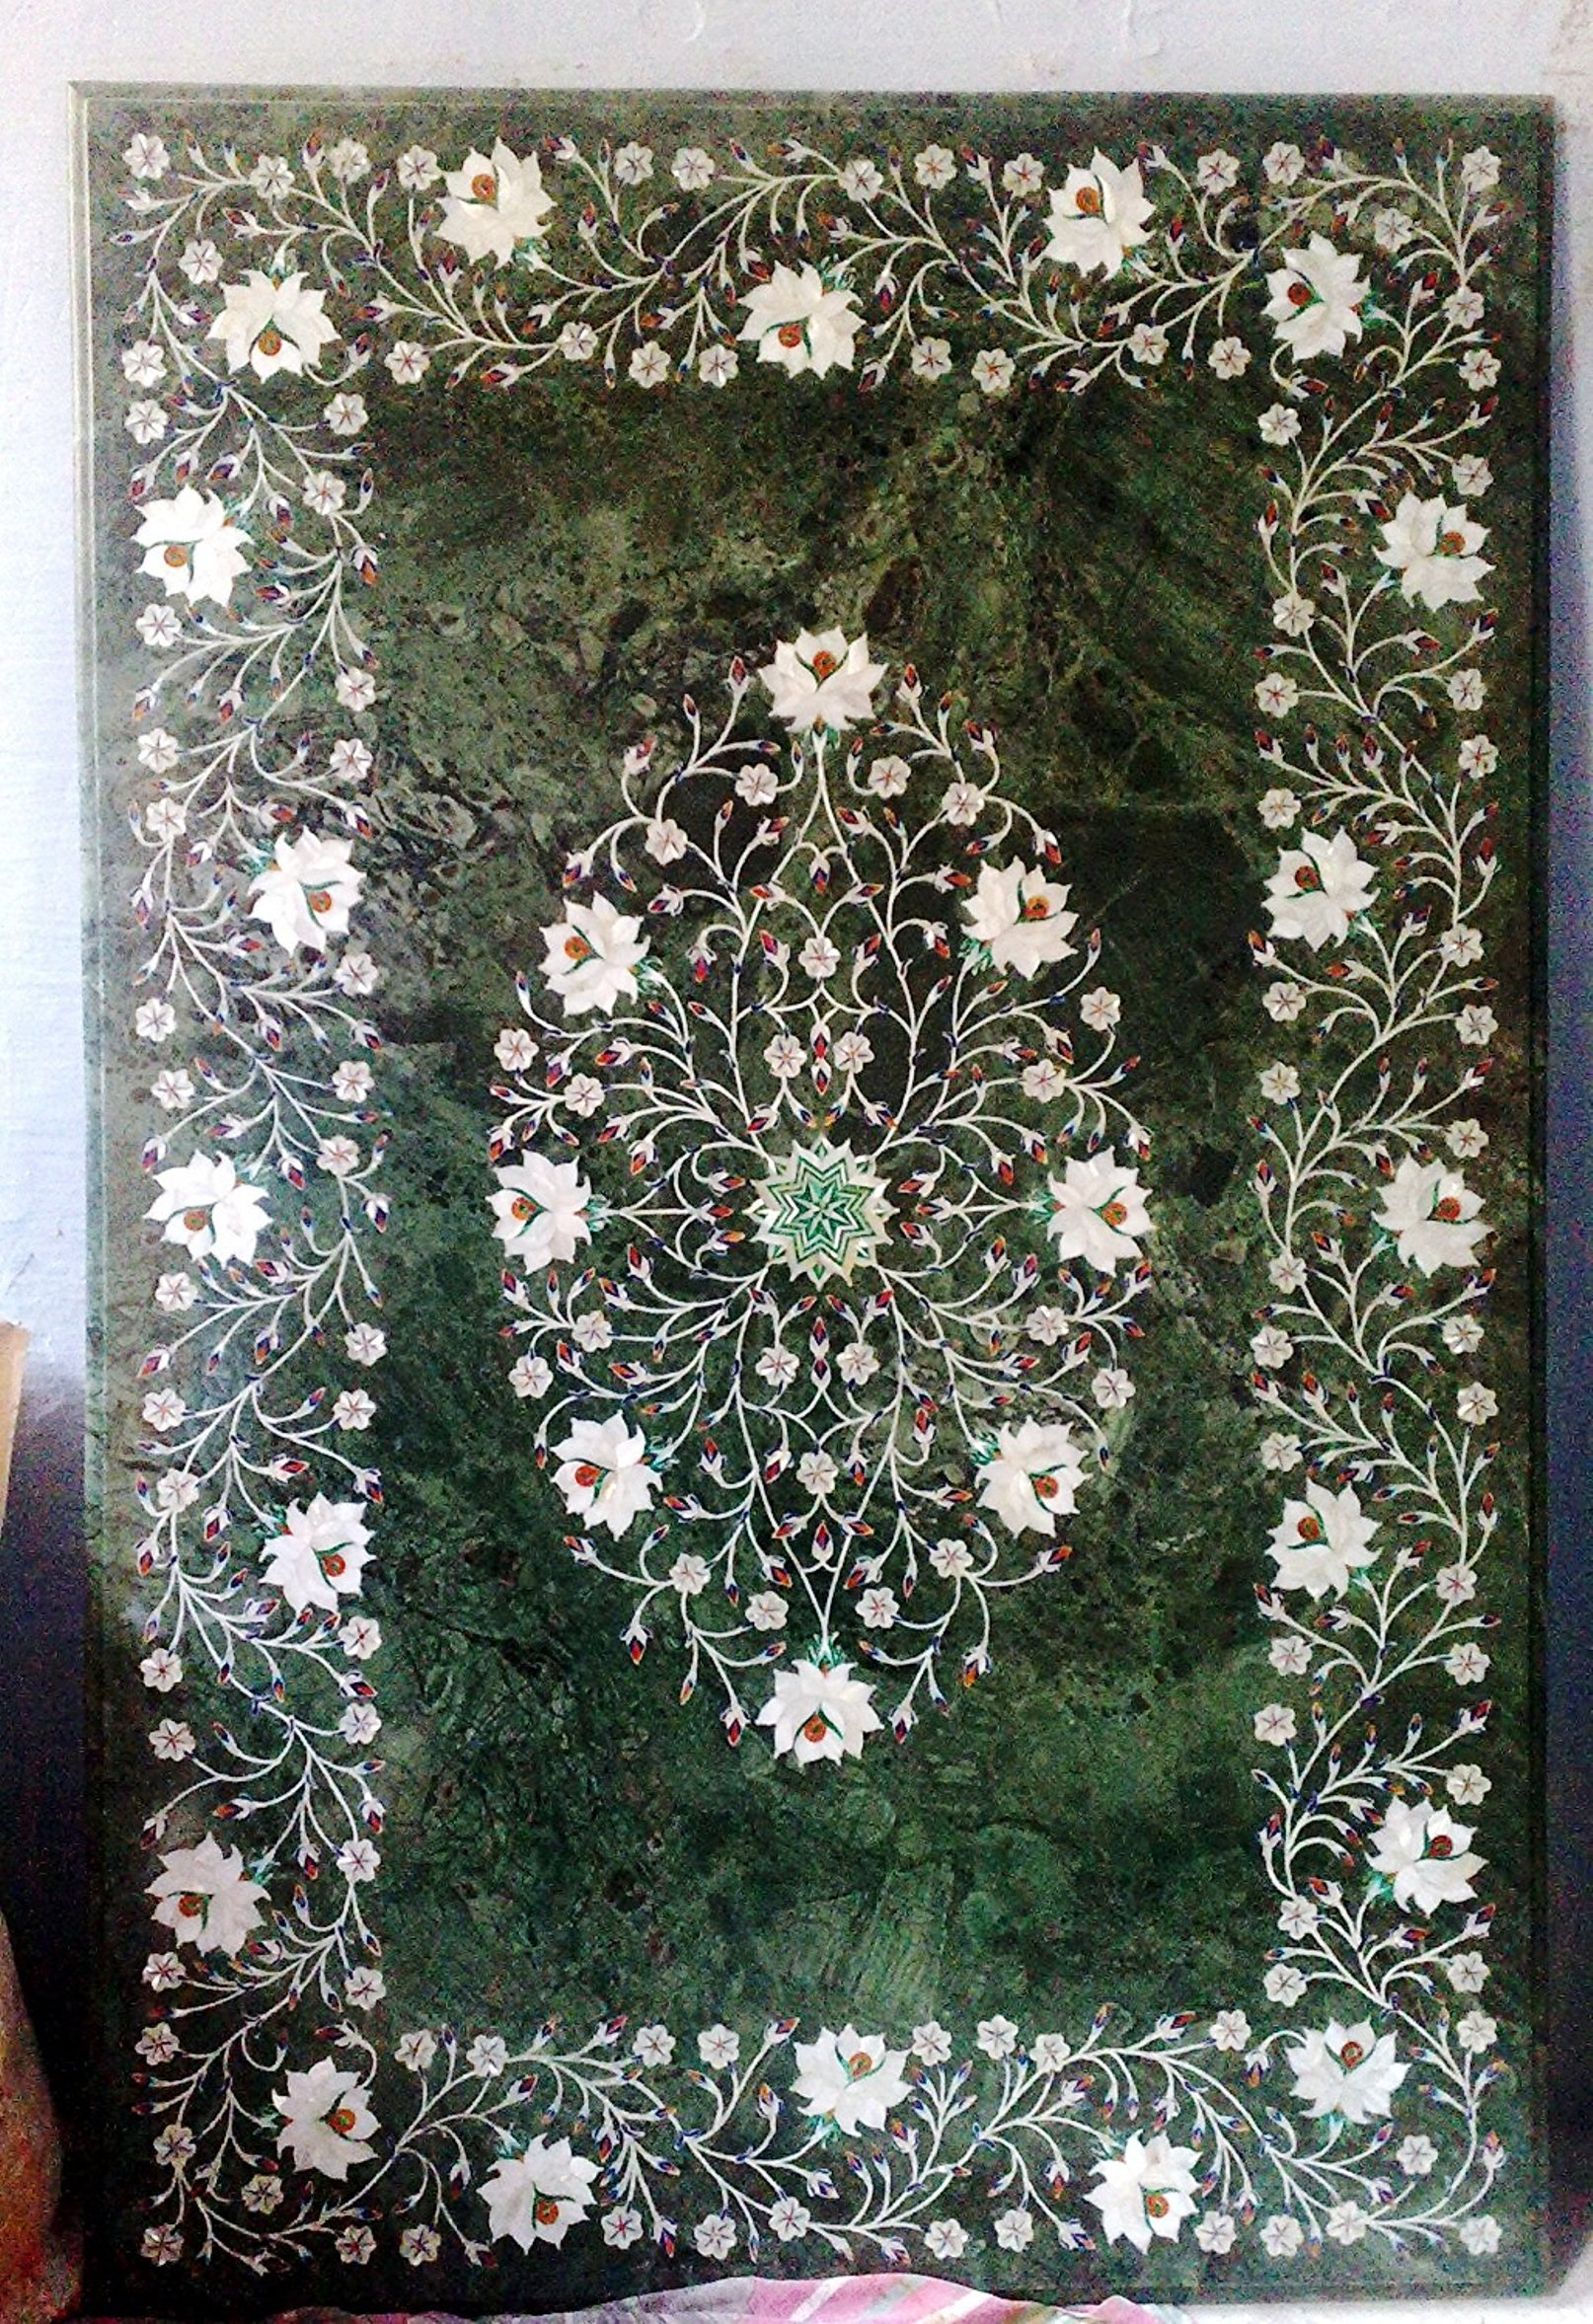 MS INTERNATIONAL 36'' X 24'' Rectangle Handcrafted Indian Marble Pietre Dure Pietra Dura Table Top (No Stand)